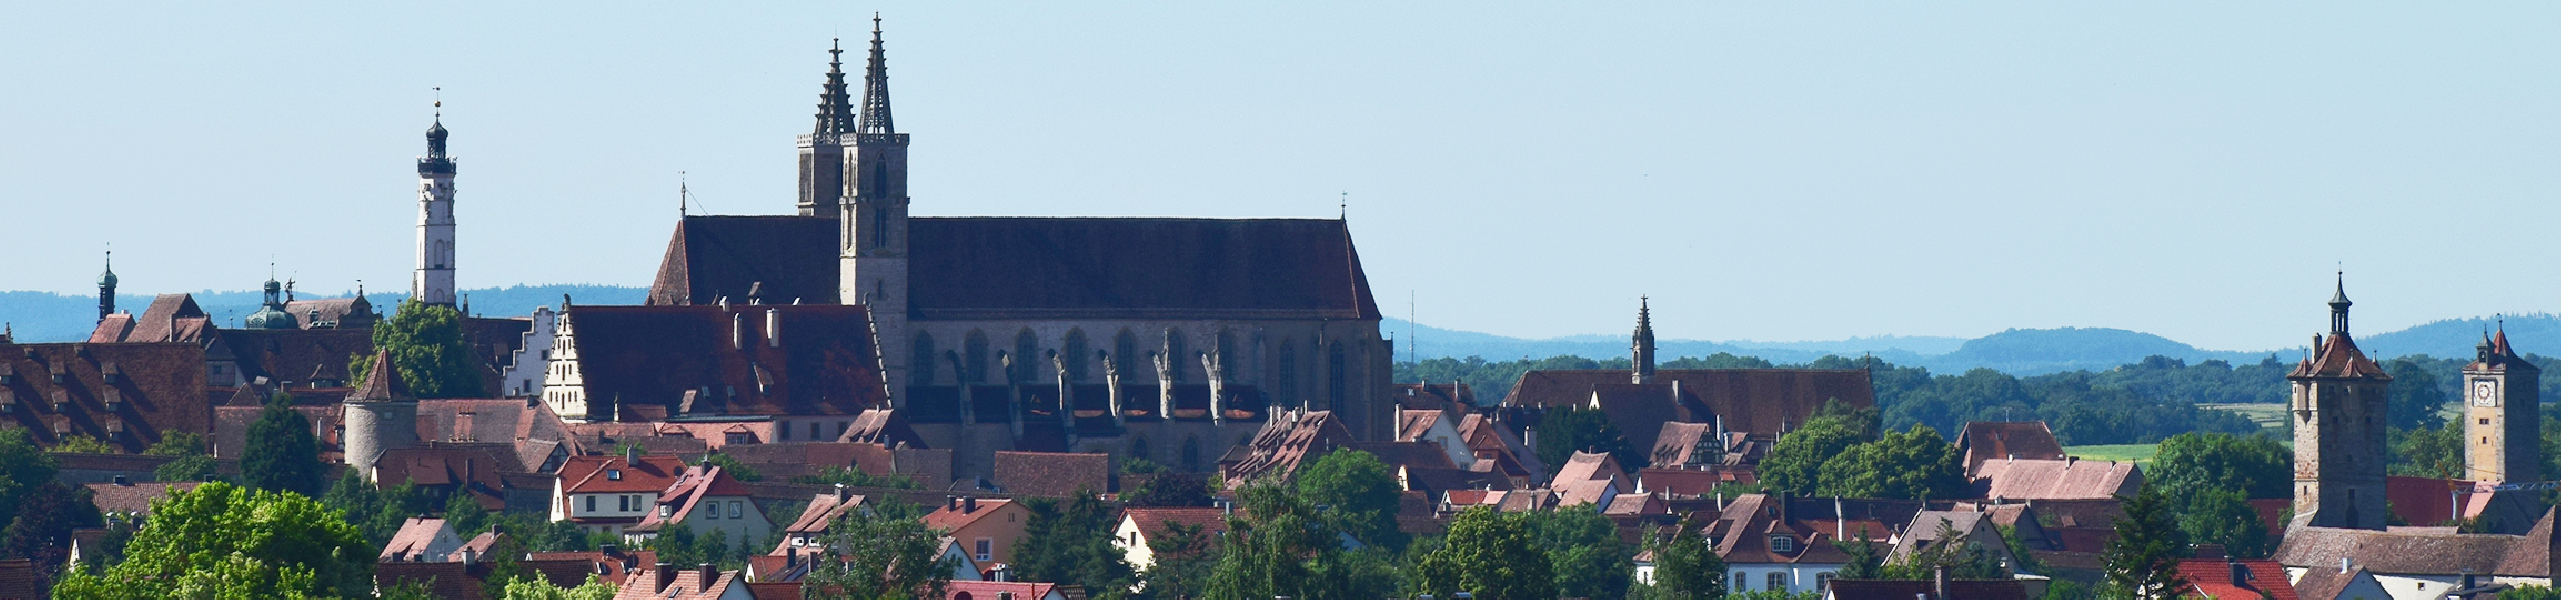 Skyline Rothenburg